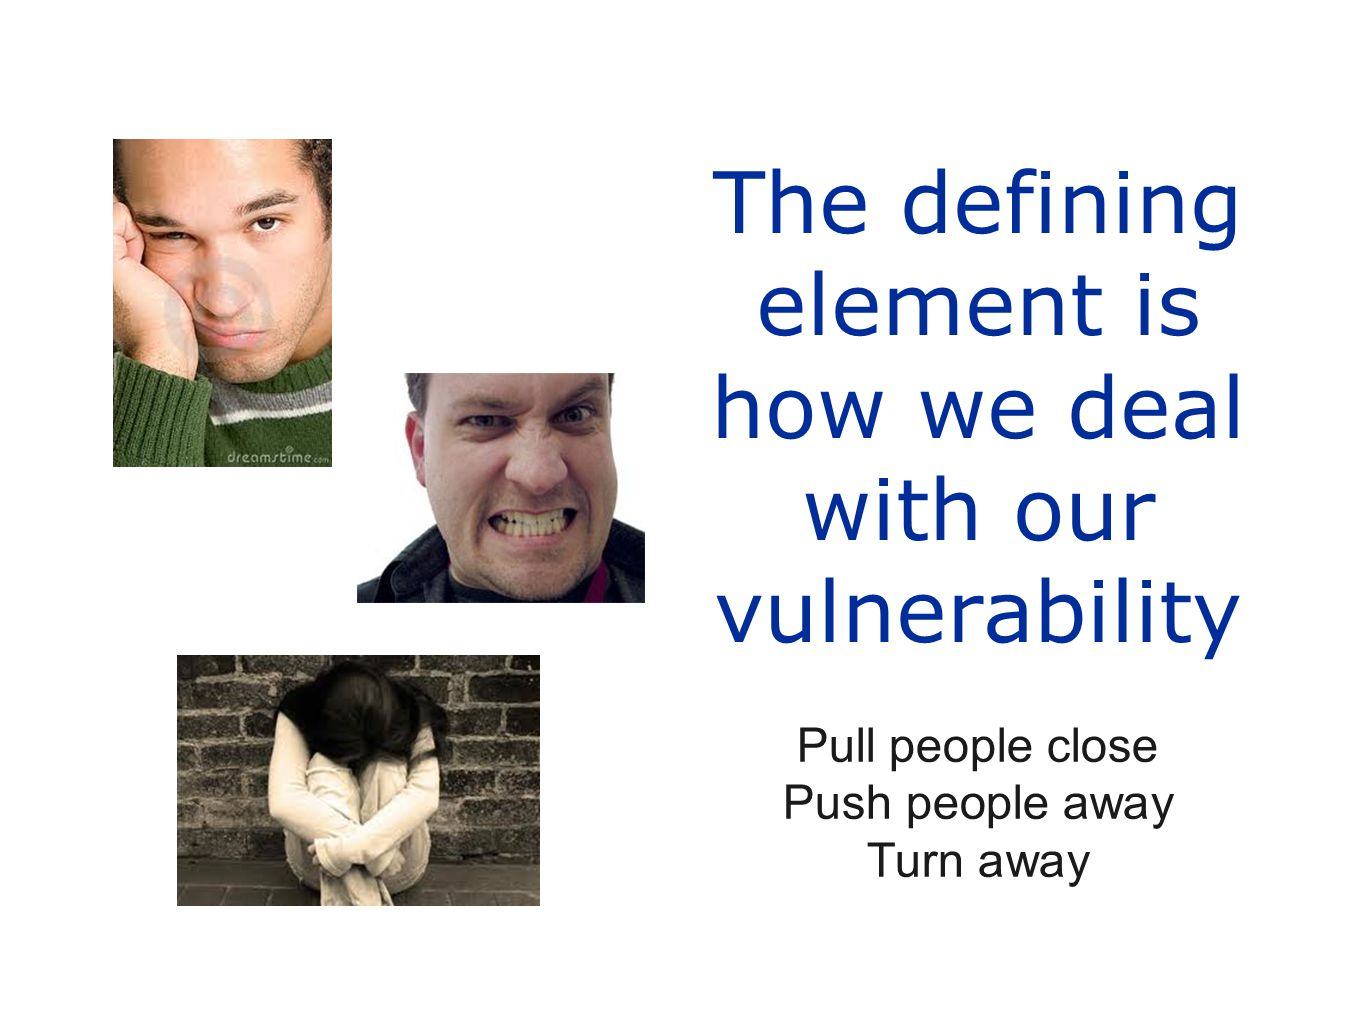 The defining element is how we deal with our vulnerability